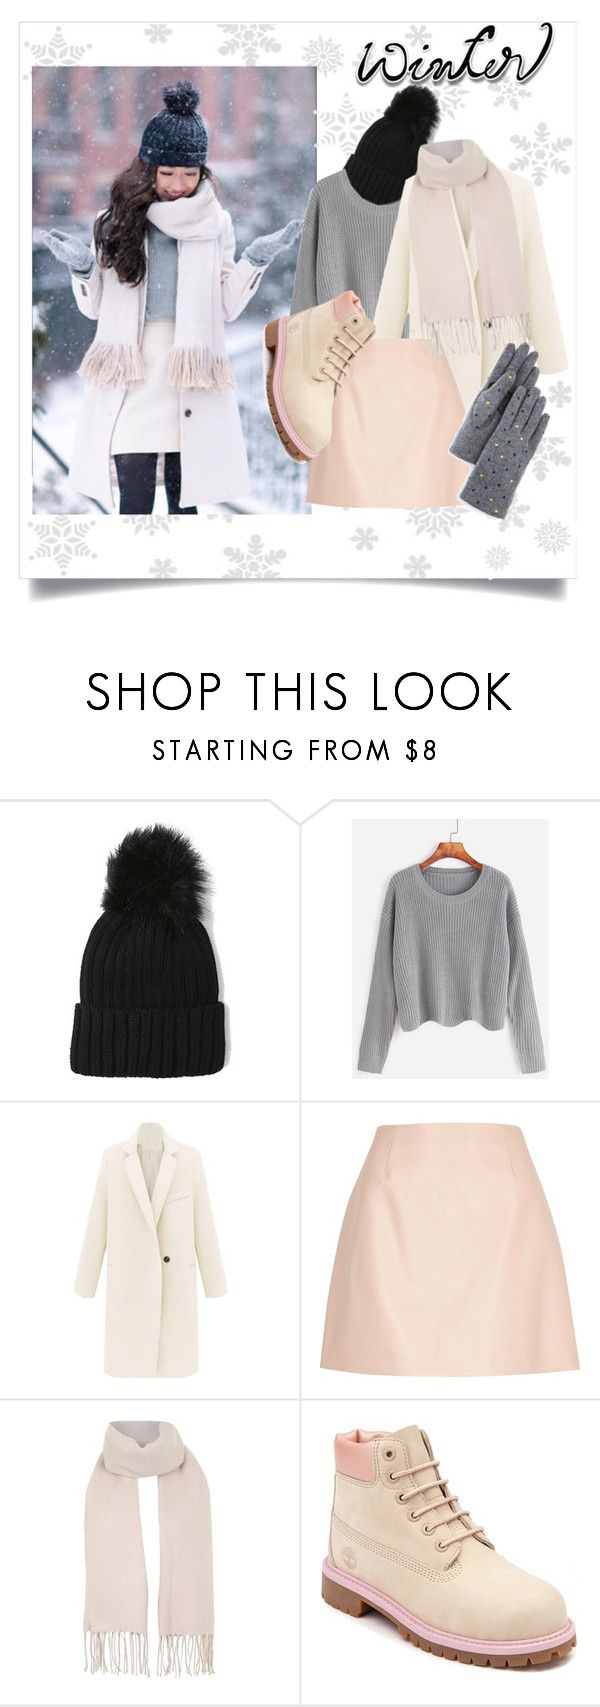 """""""Winter Essencials"""" by keepfashion92 ❤ liked on Polyvore featuring WithChic, River Island, Topshop, Timberland, Echo, GetTheLook, lowcost and extrapetite"""